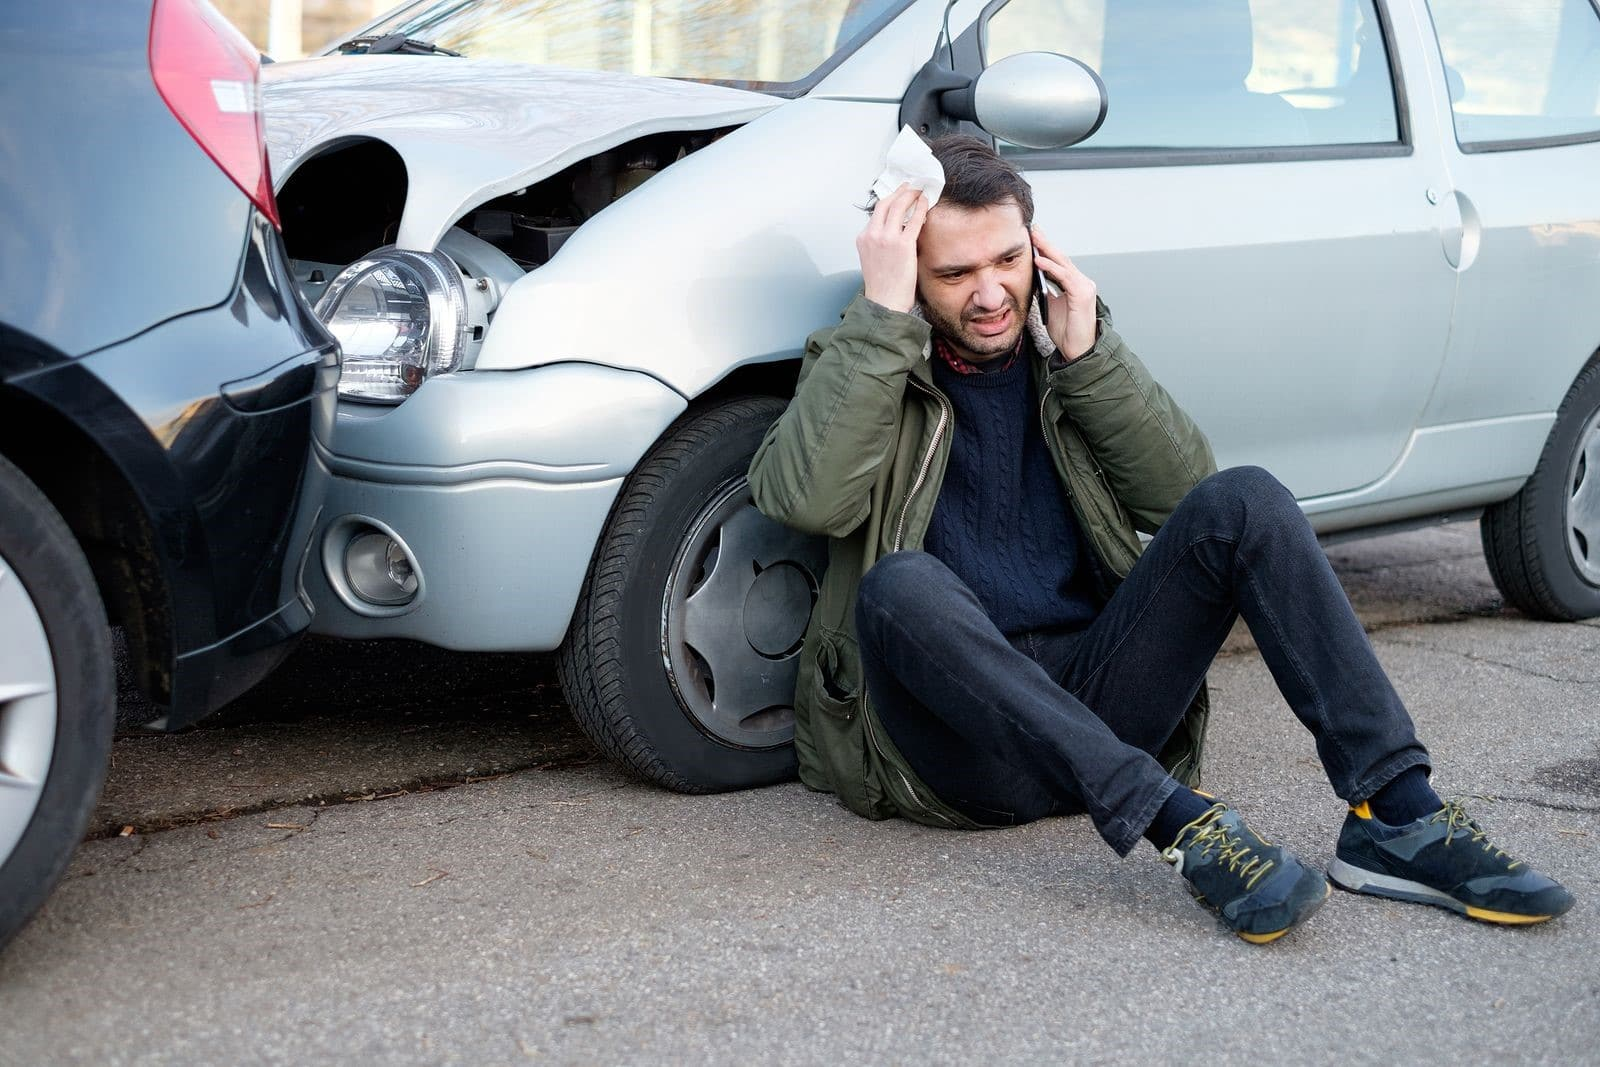 A Car Accident Lawyer Advises People to Remain Calm After an Accident